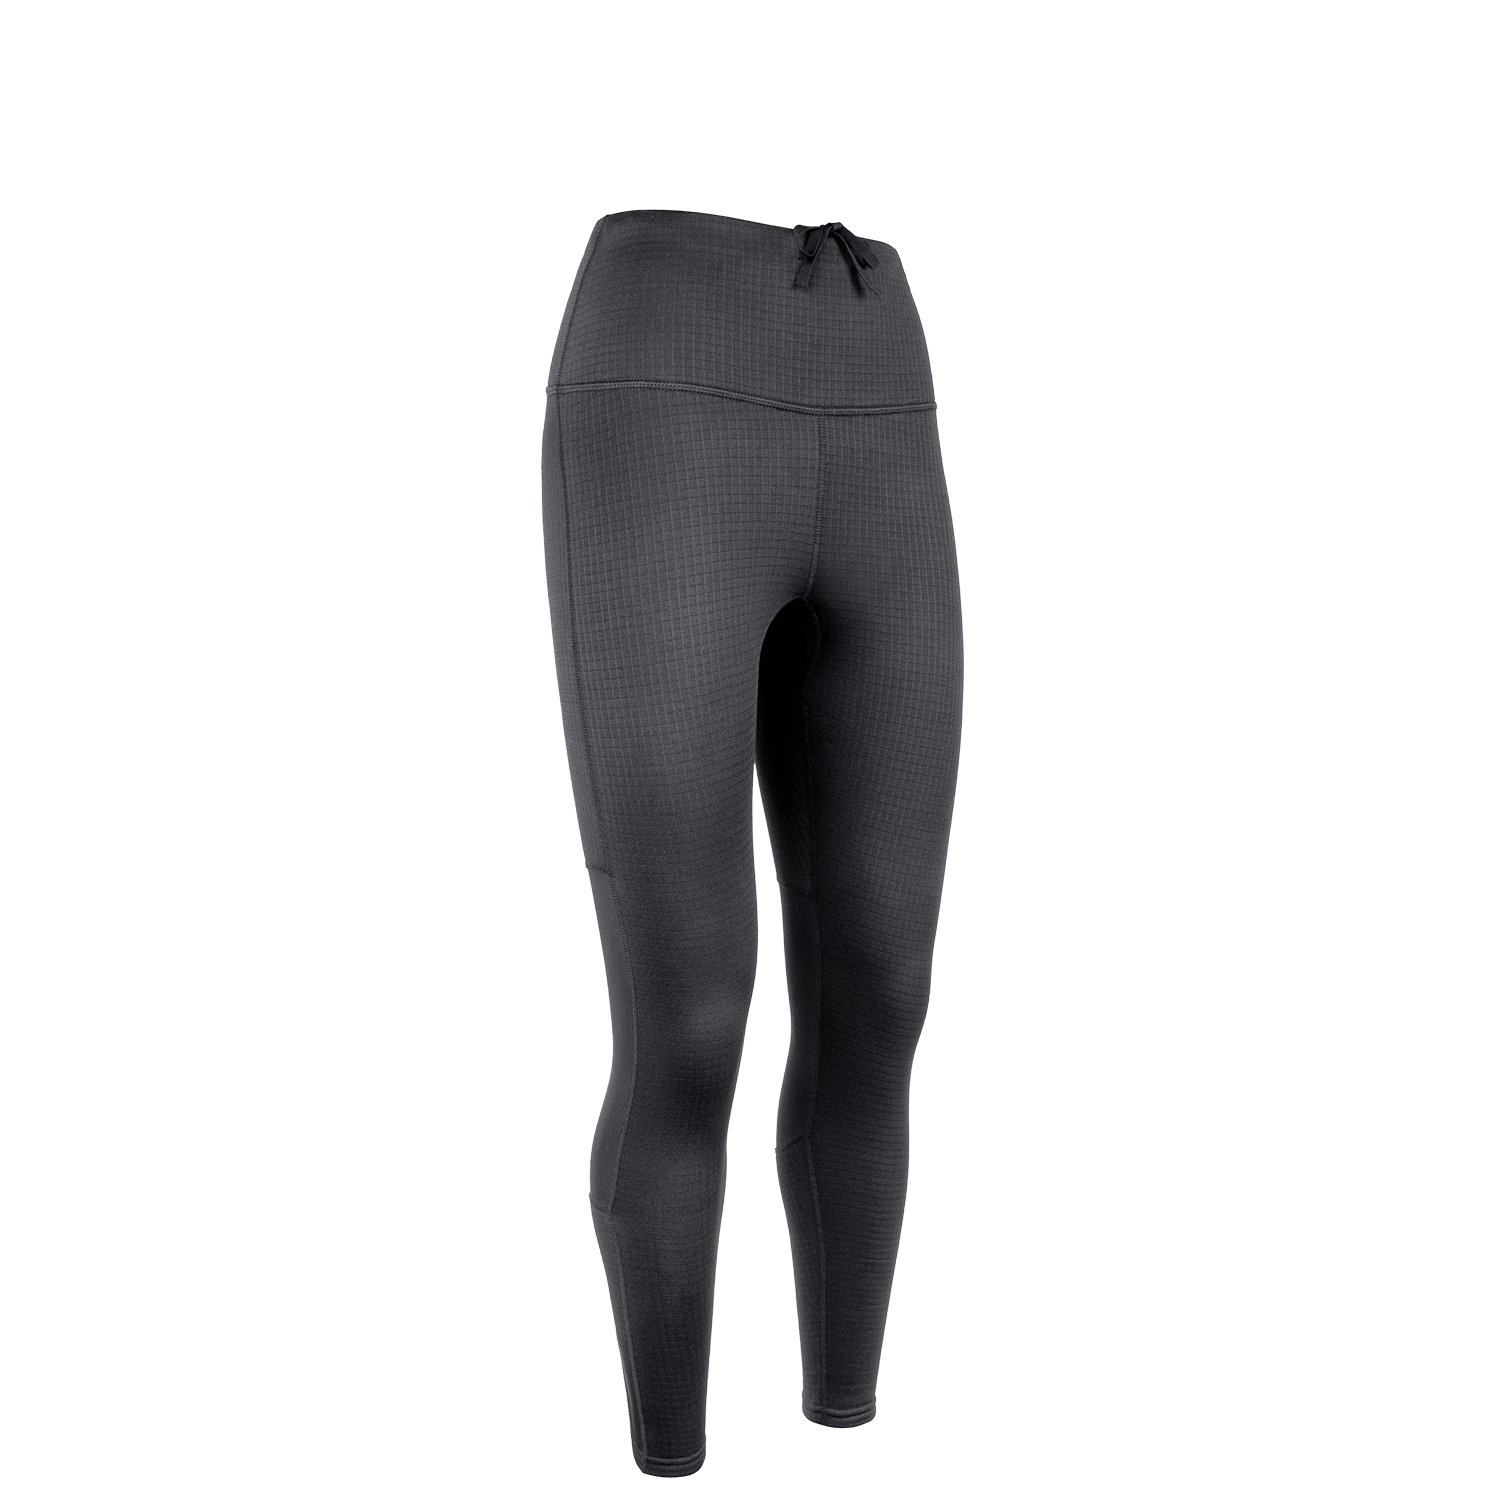 Hunters Element Women's Core+ Leggings - Black